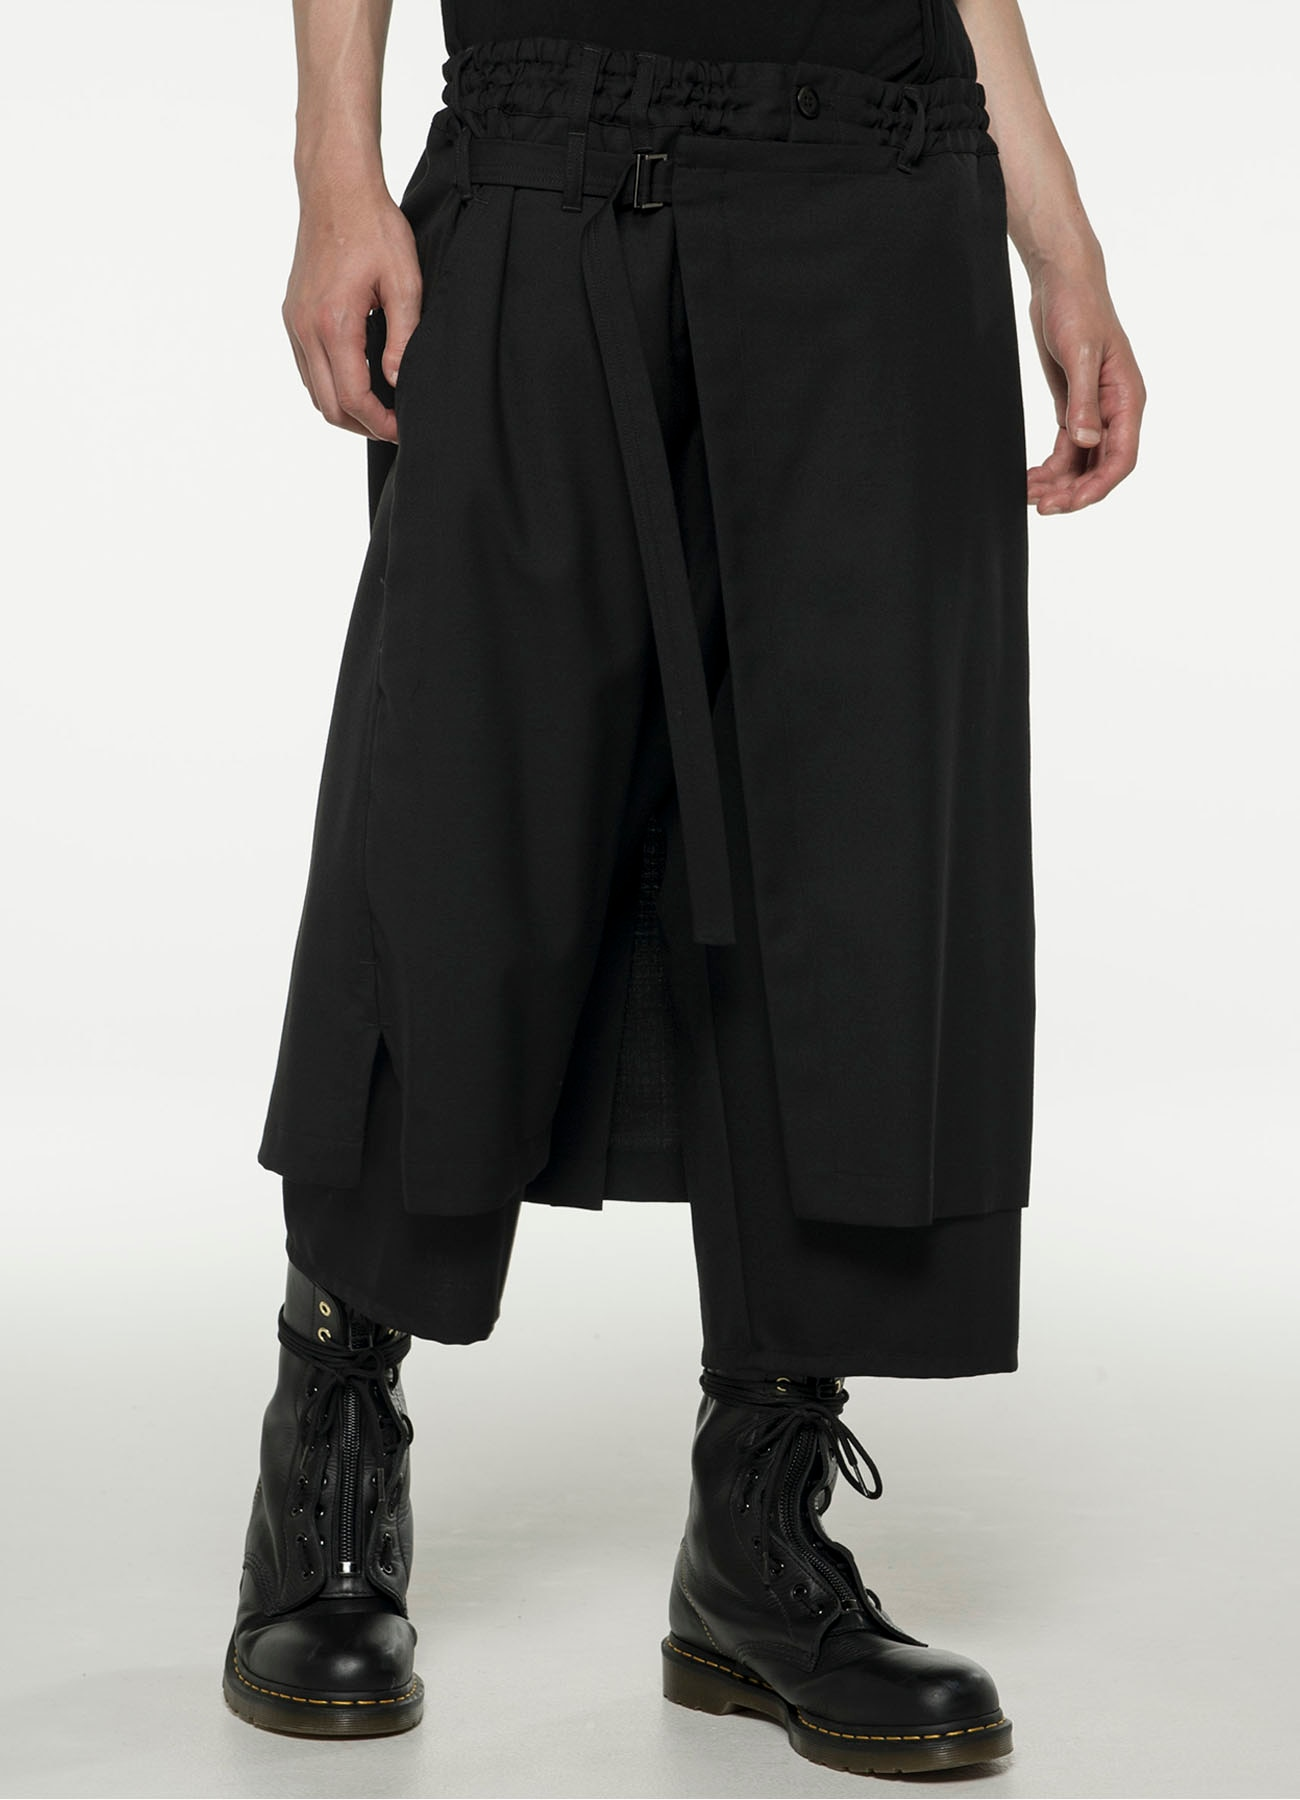 T/W_ gaberdine Wrap Pants type1